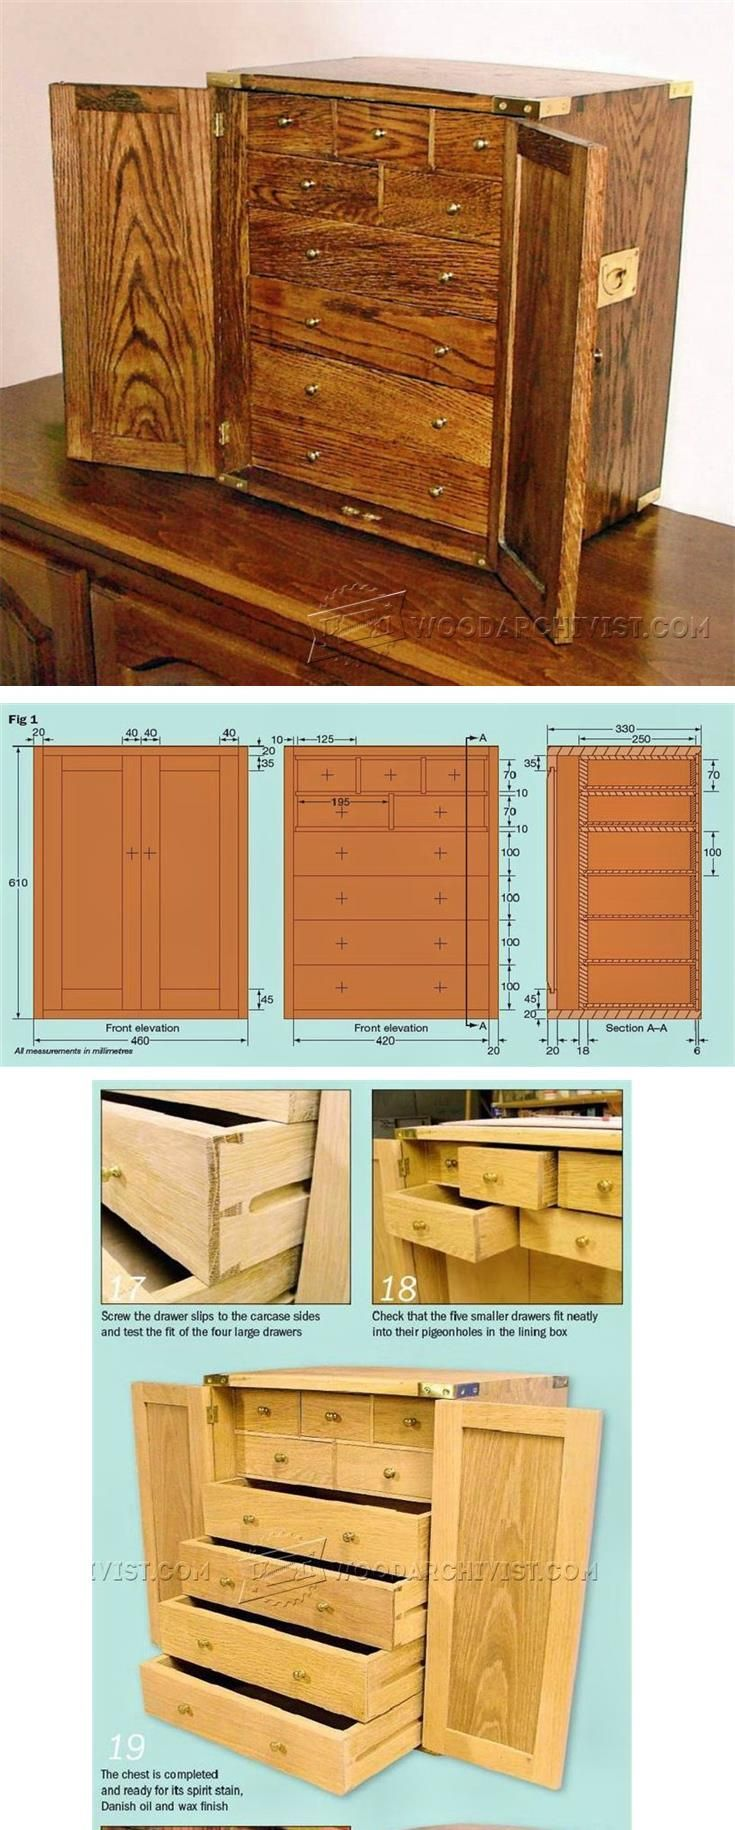 Cutlery Chest Plans - Woodworking Plans and Projects | WoodArchivist.com